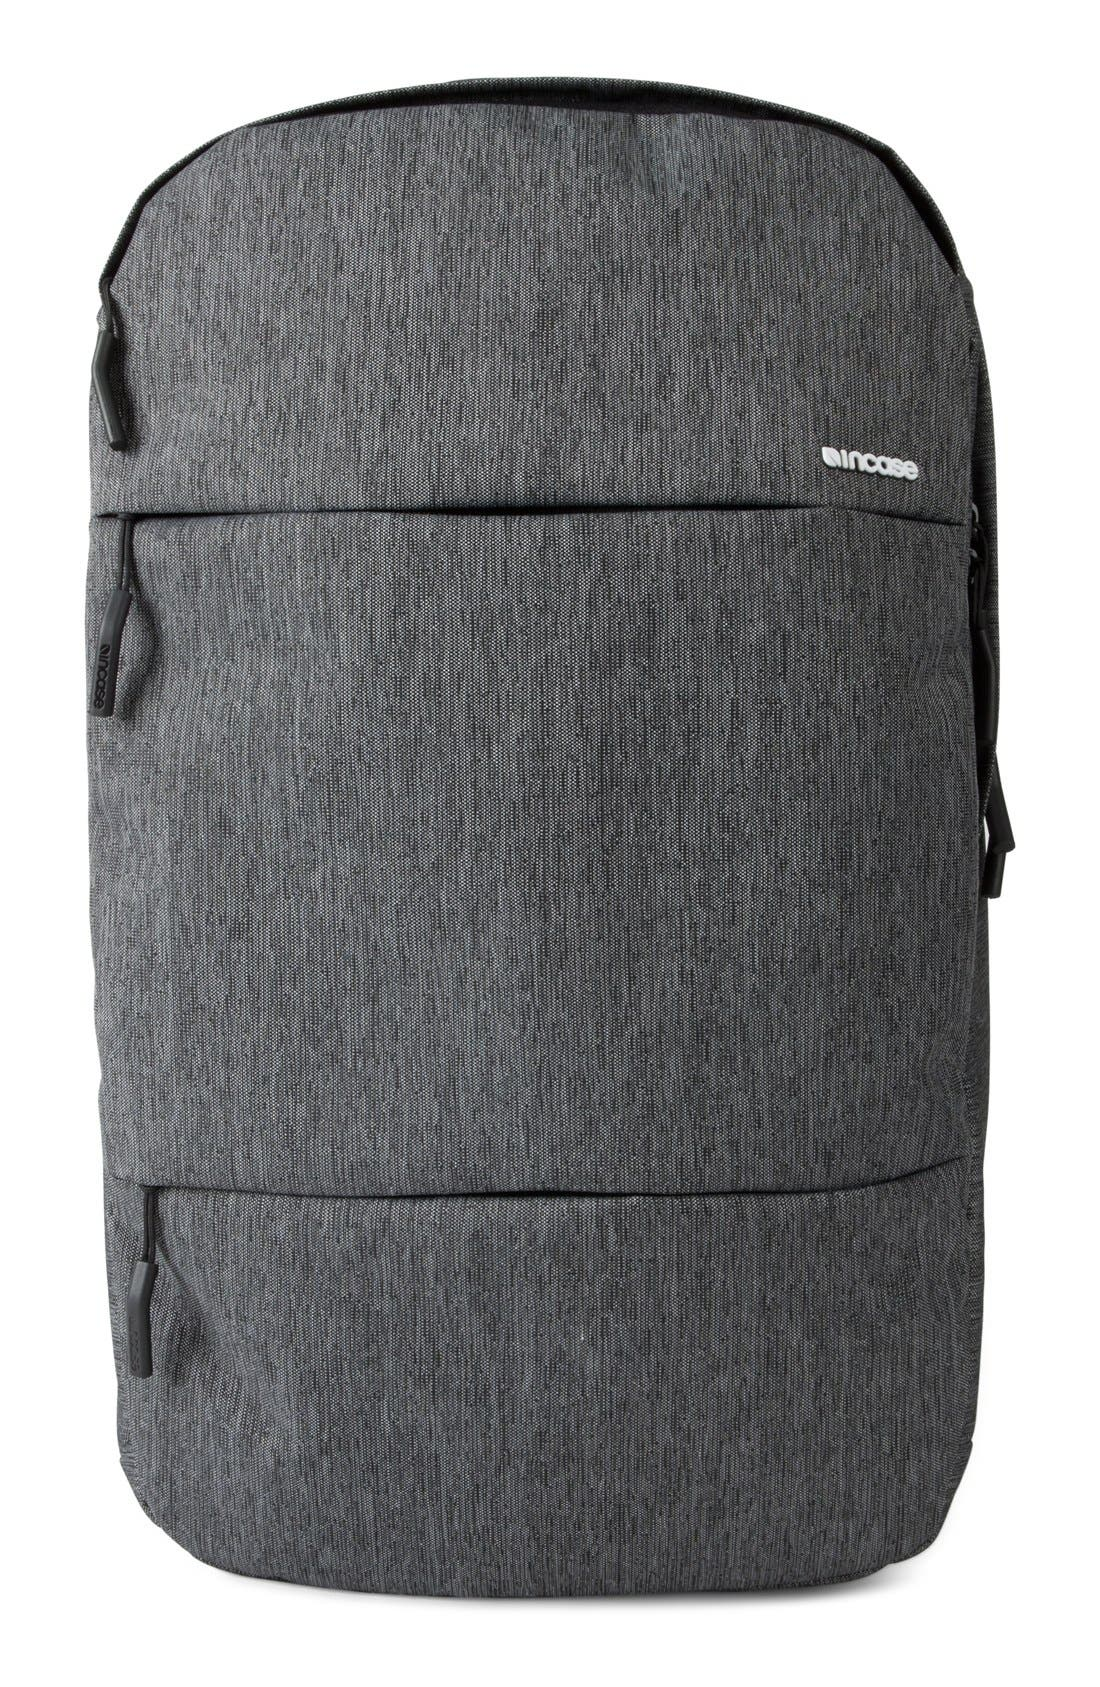 City Collection Backpack,                             Main thumbnail 1, color,                             HEATHER BLACK/ GUNMETAL GREY